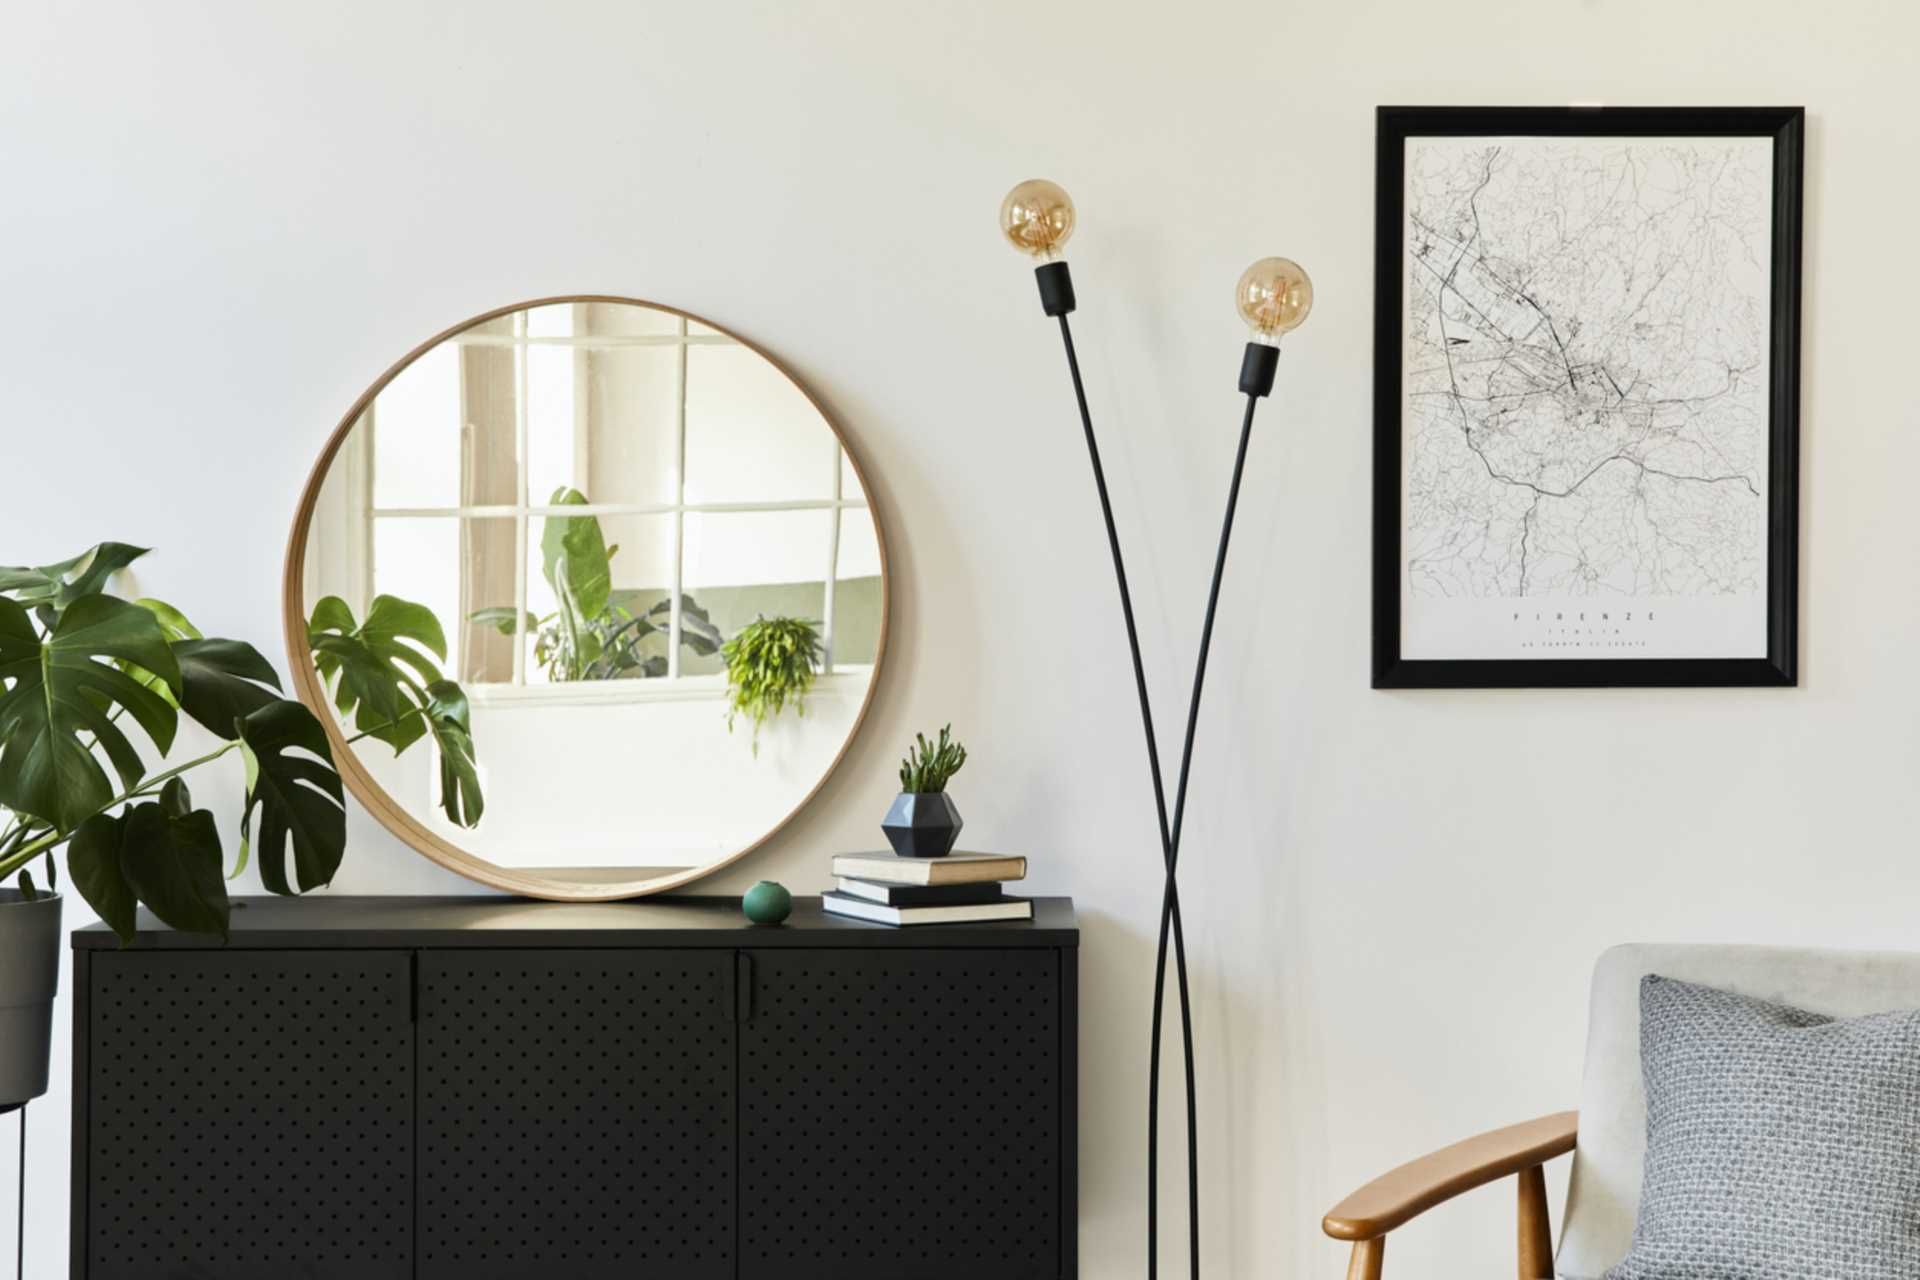 How to make the most of a smaller space